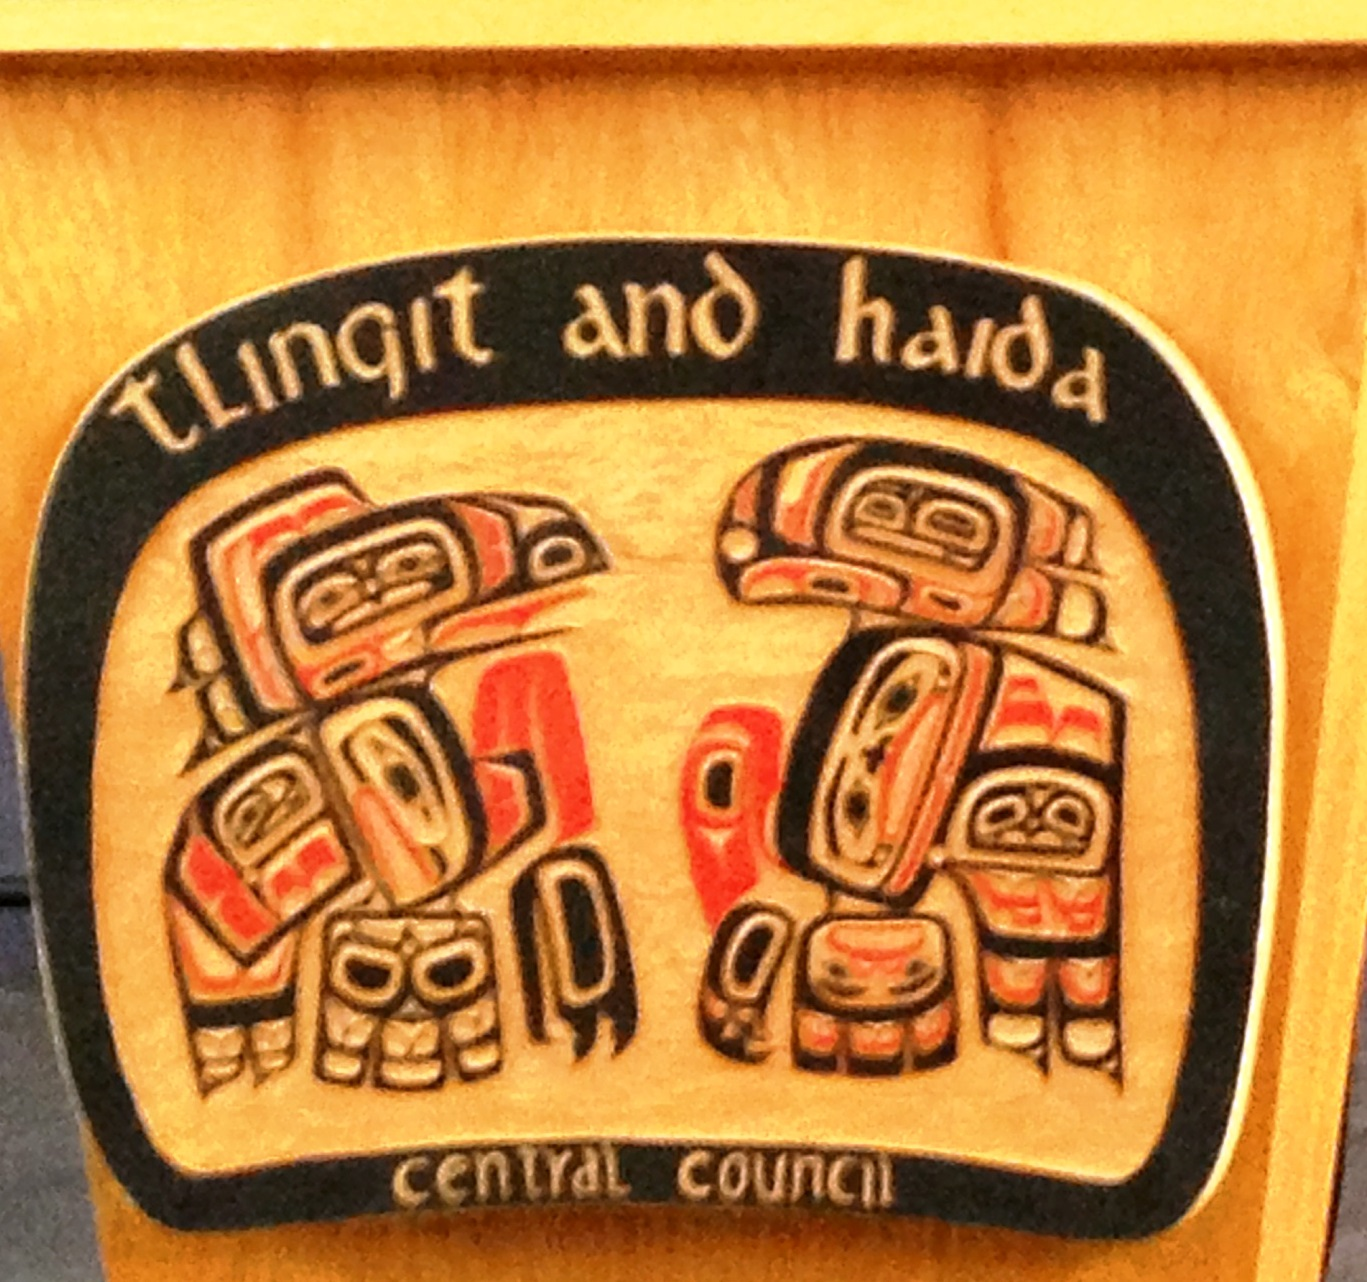 Tlingit-Haida Central Council OKs same-sex marriages